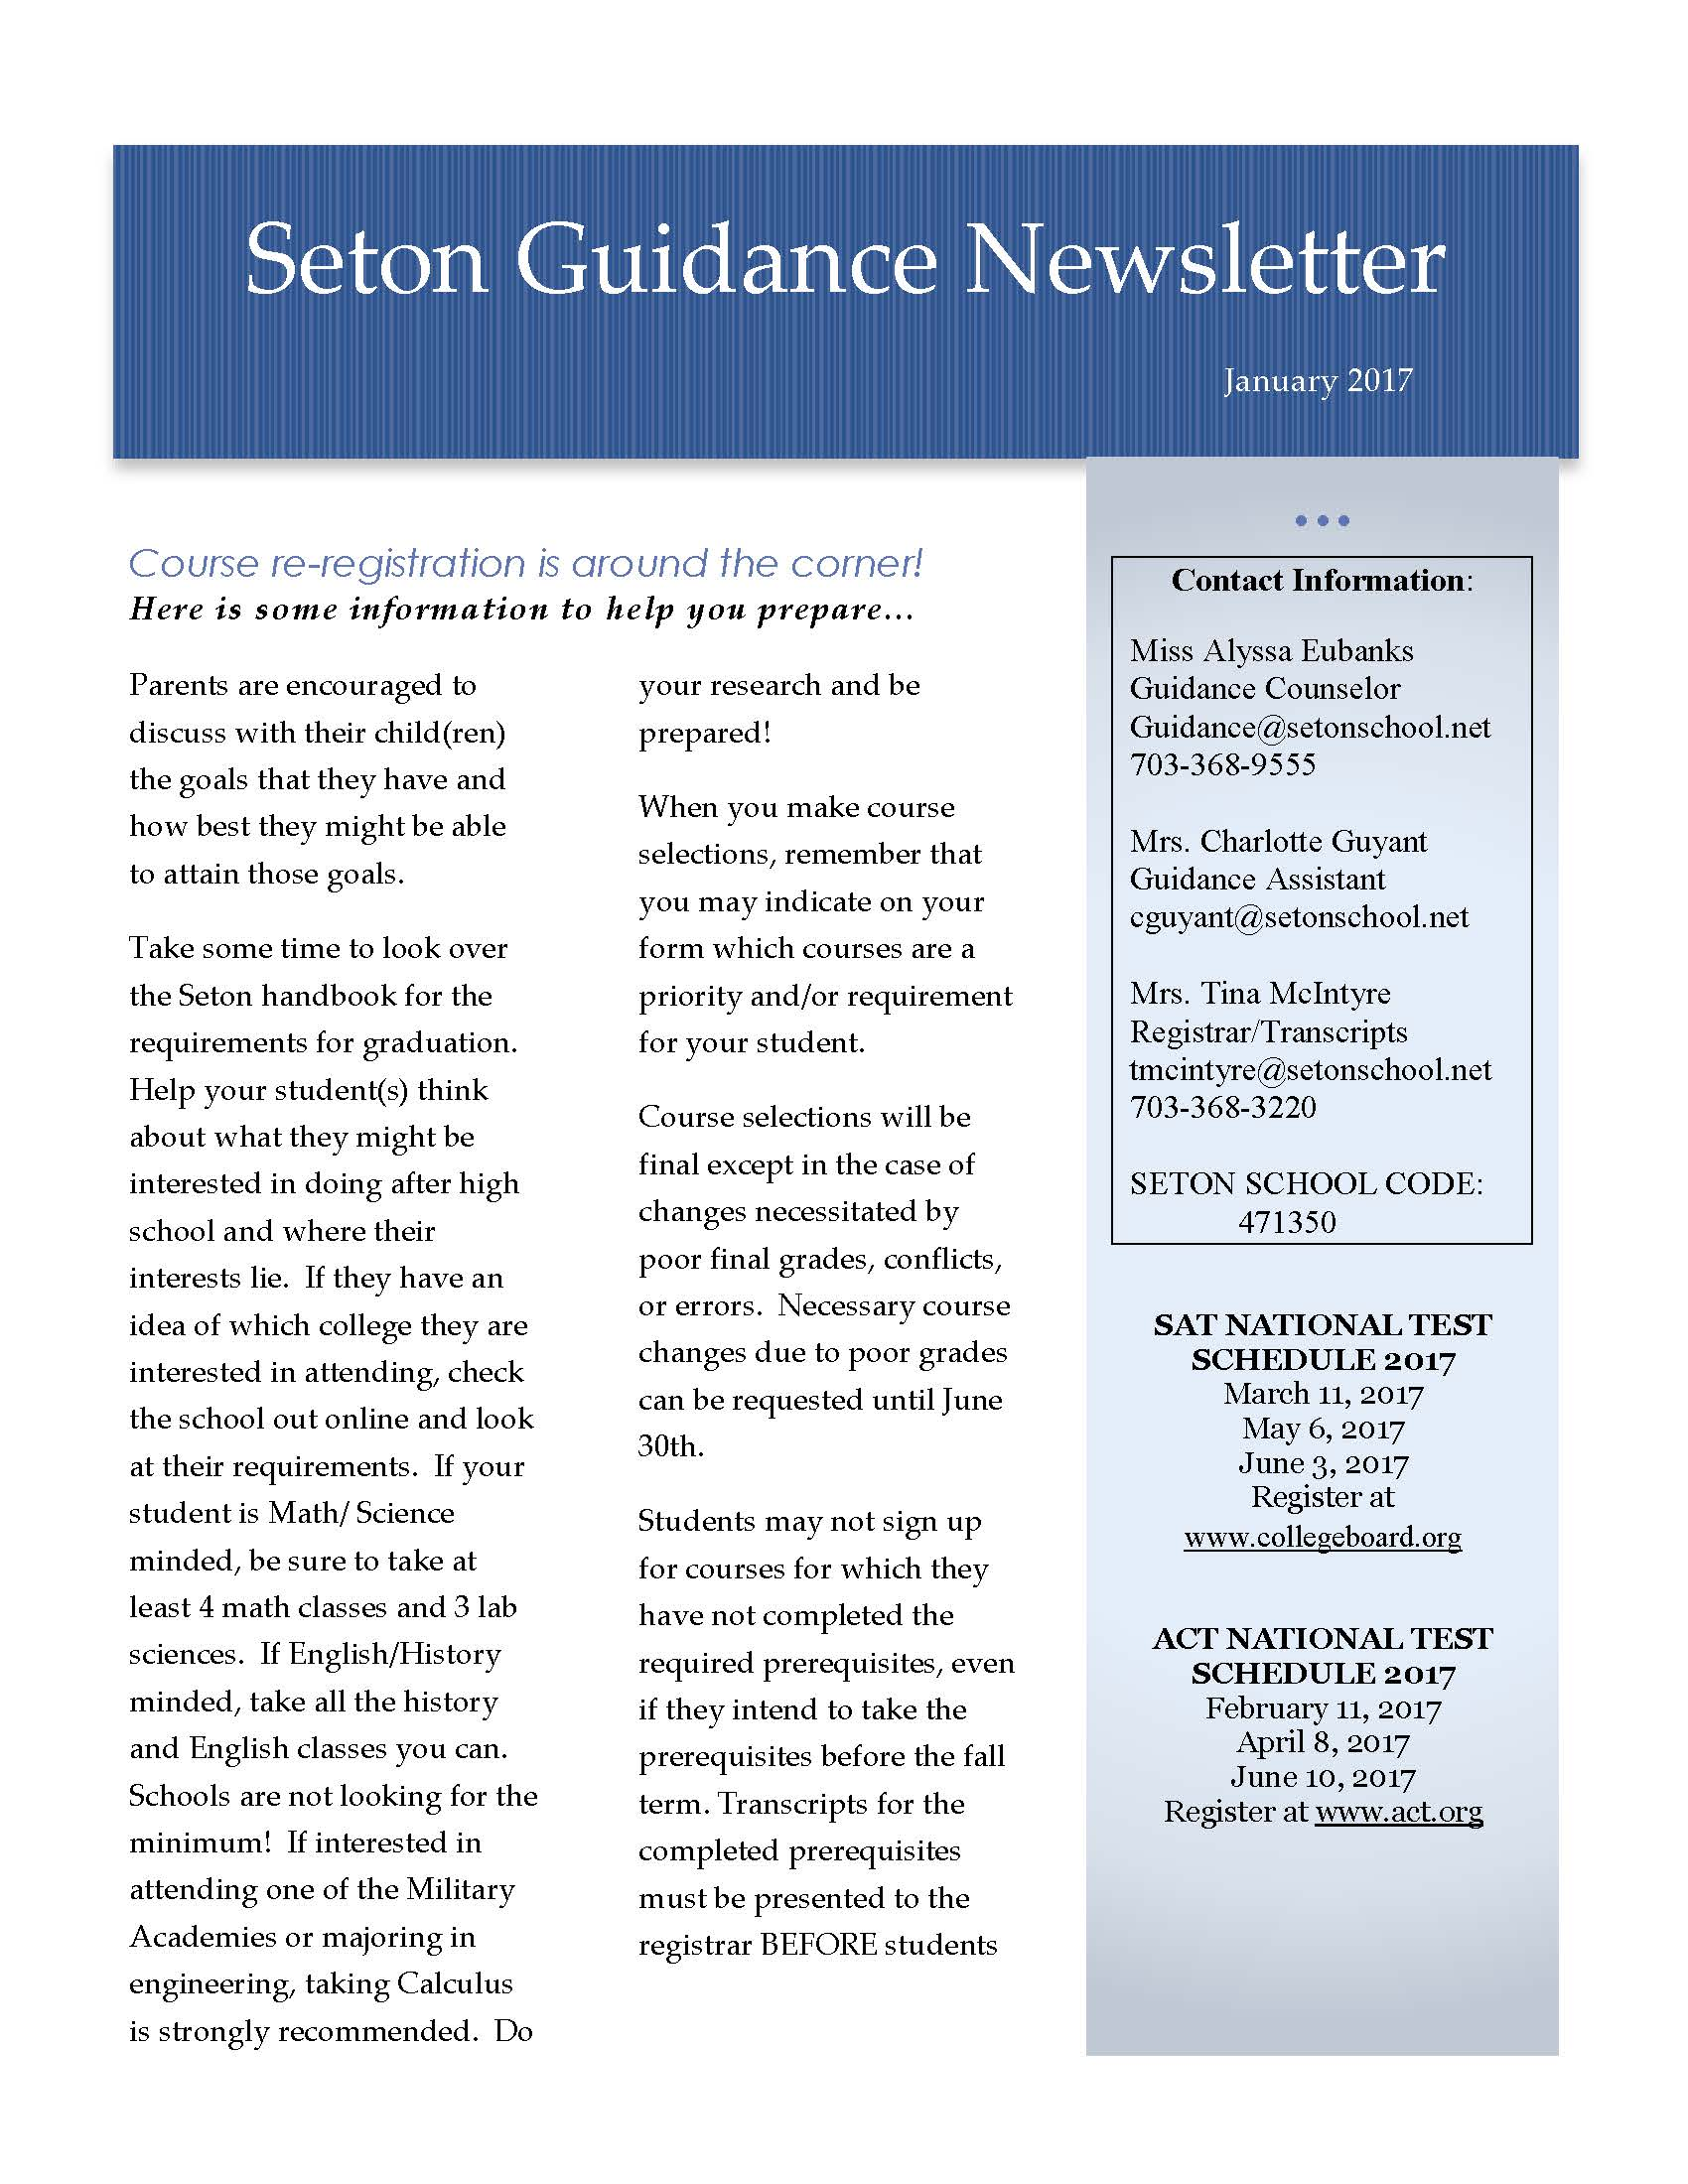 January 2017 Guidance Newsletter